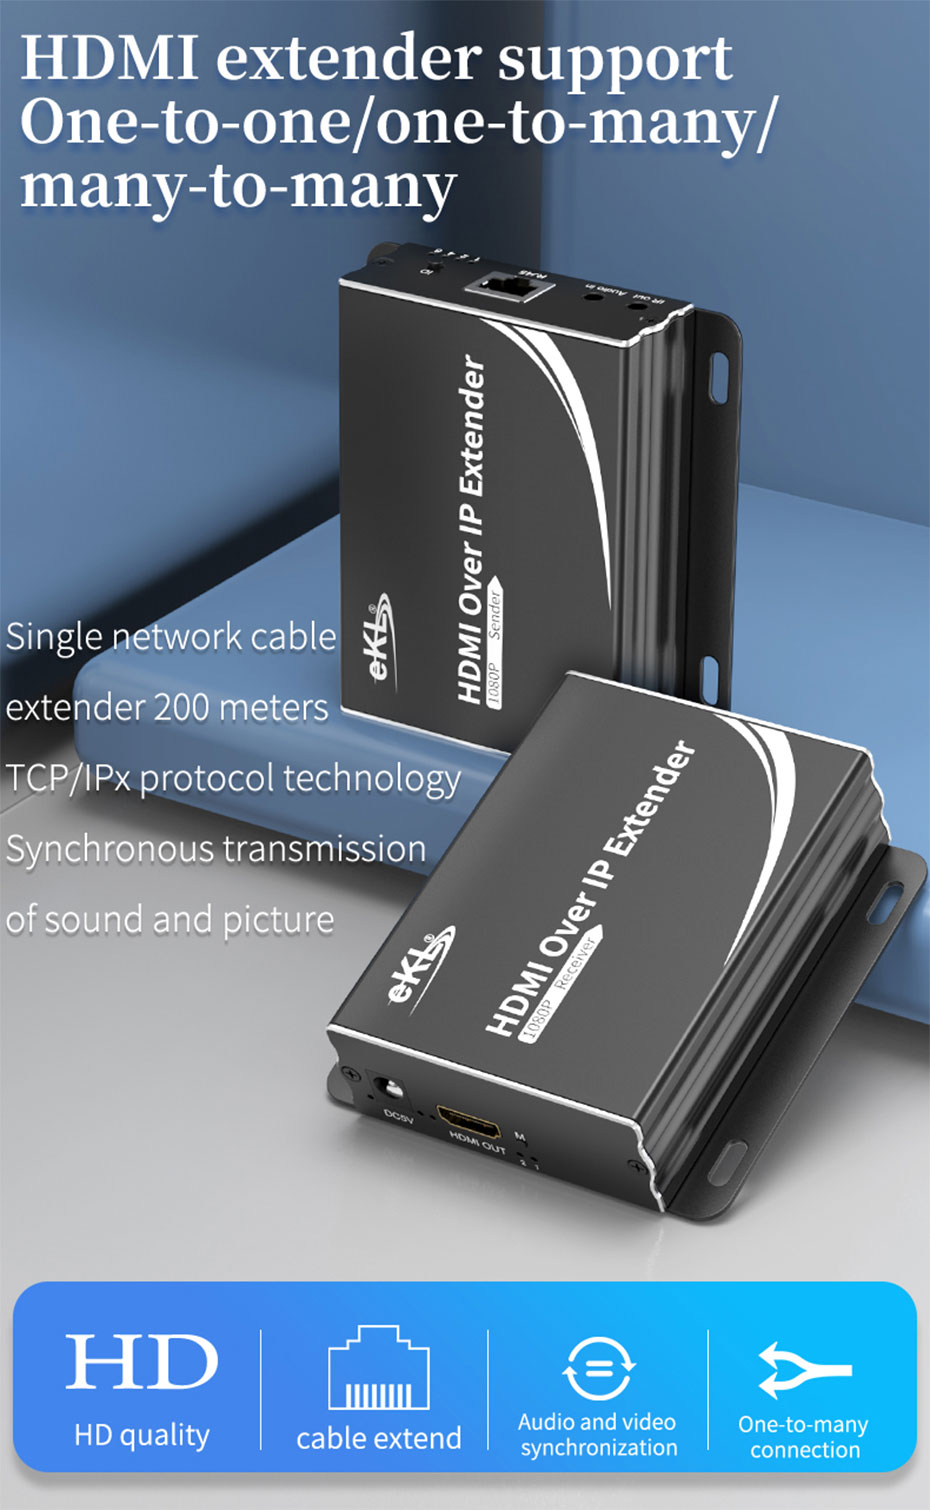 HDMI network extender HE150 supports 1 to 1/1 to many/many to many extension